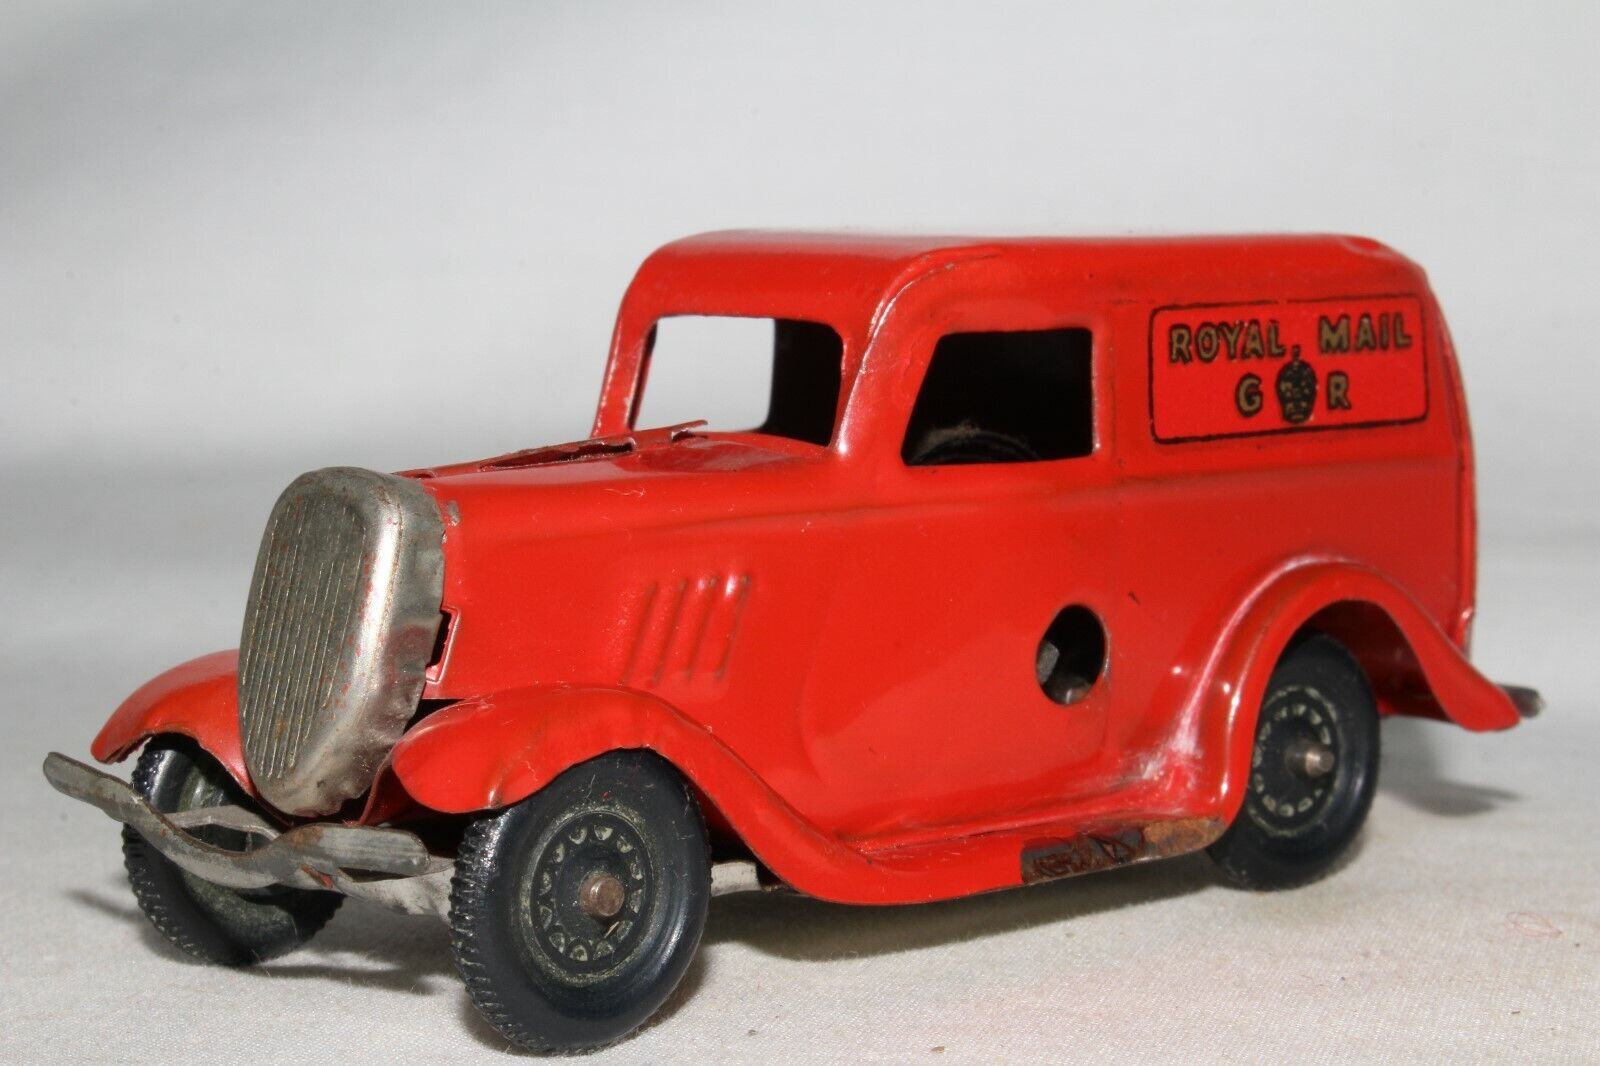 Triang Minic 591ms Ford Hell Lieferung Lastwagen, Royal Mail, Original